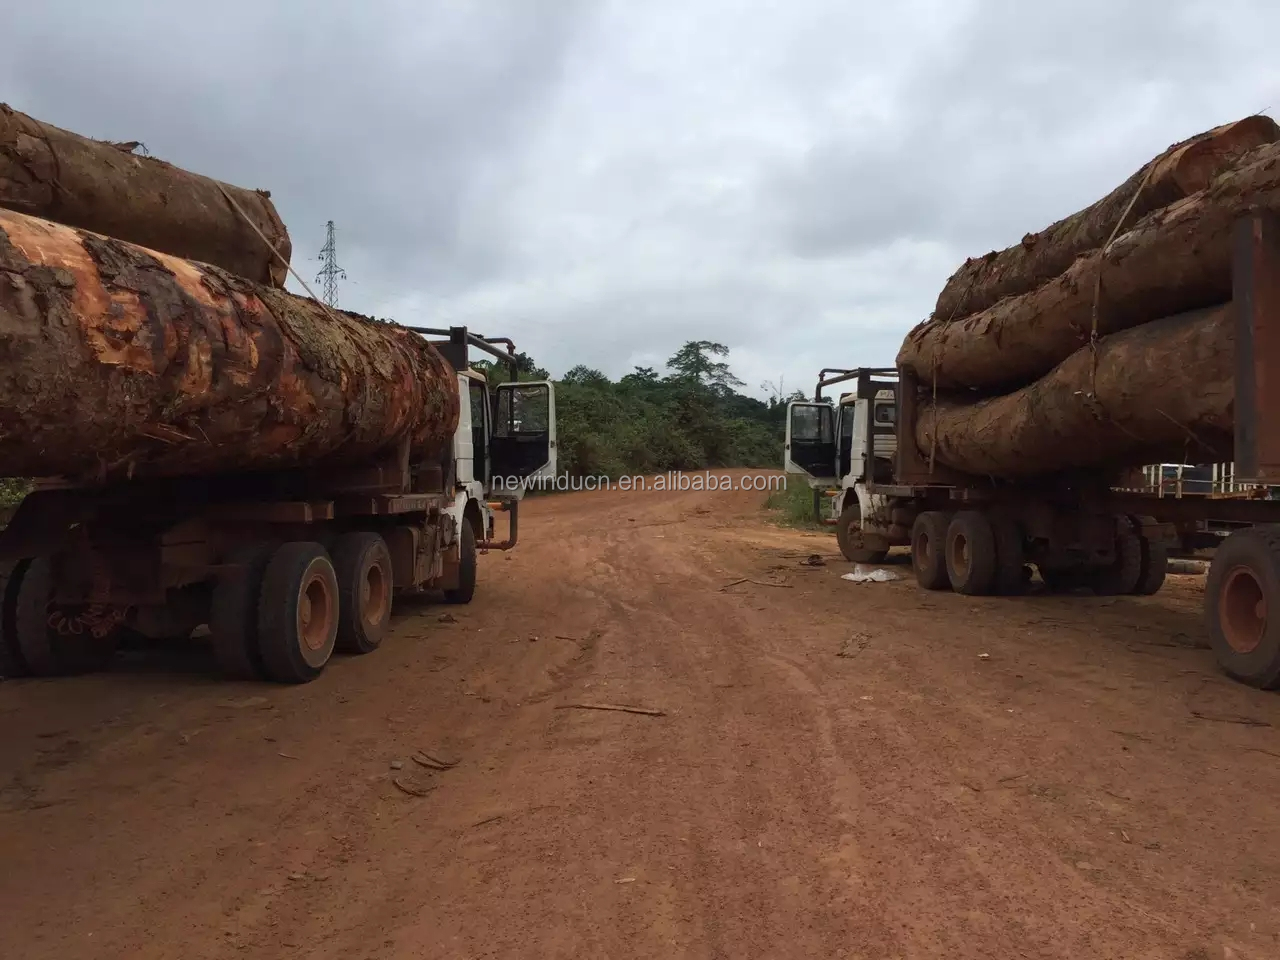 BEIBEN NG80 6X4 380HP strong engine timber trailer truck tractor truck sale in Solomon Islands